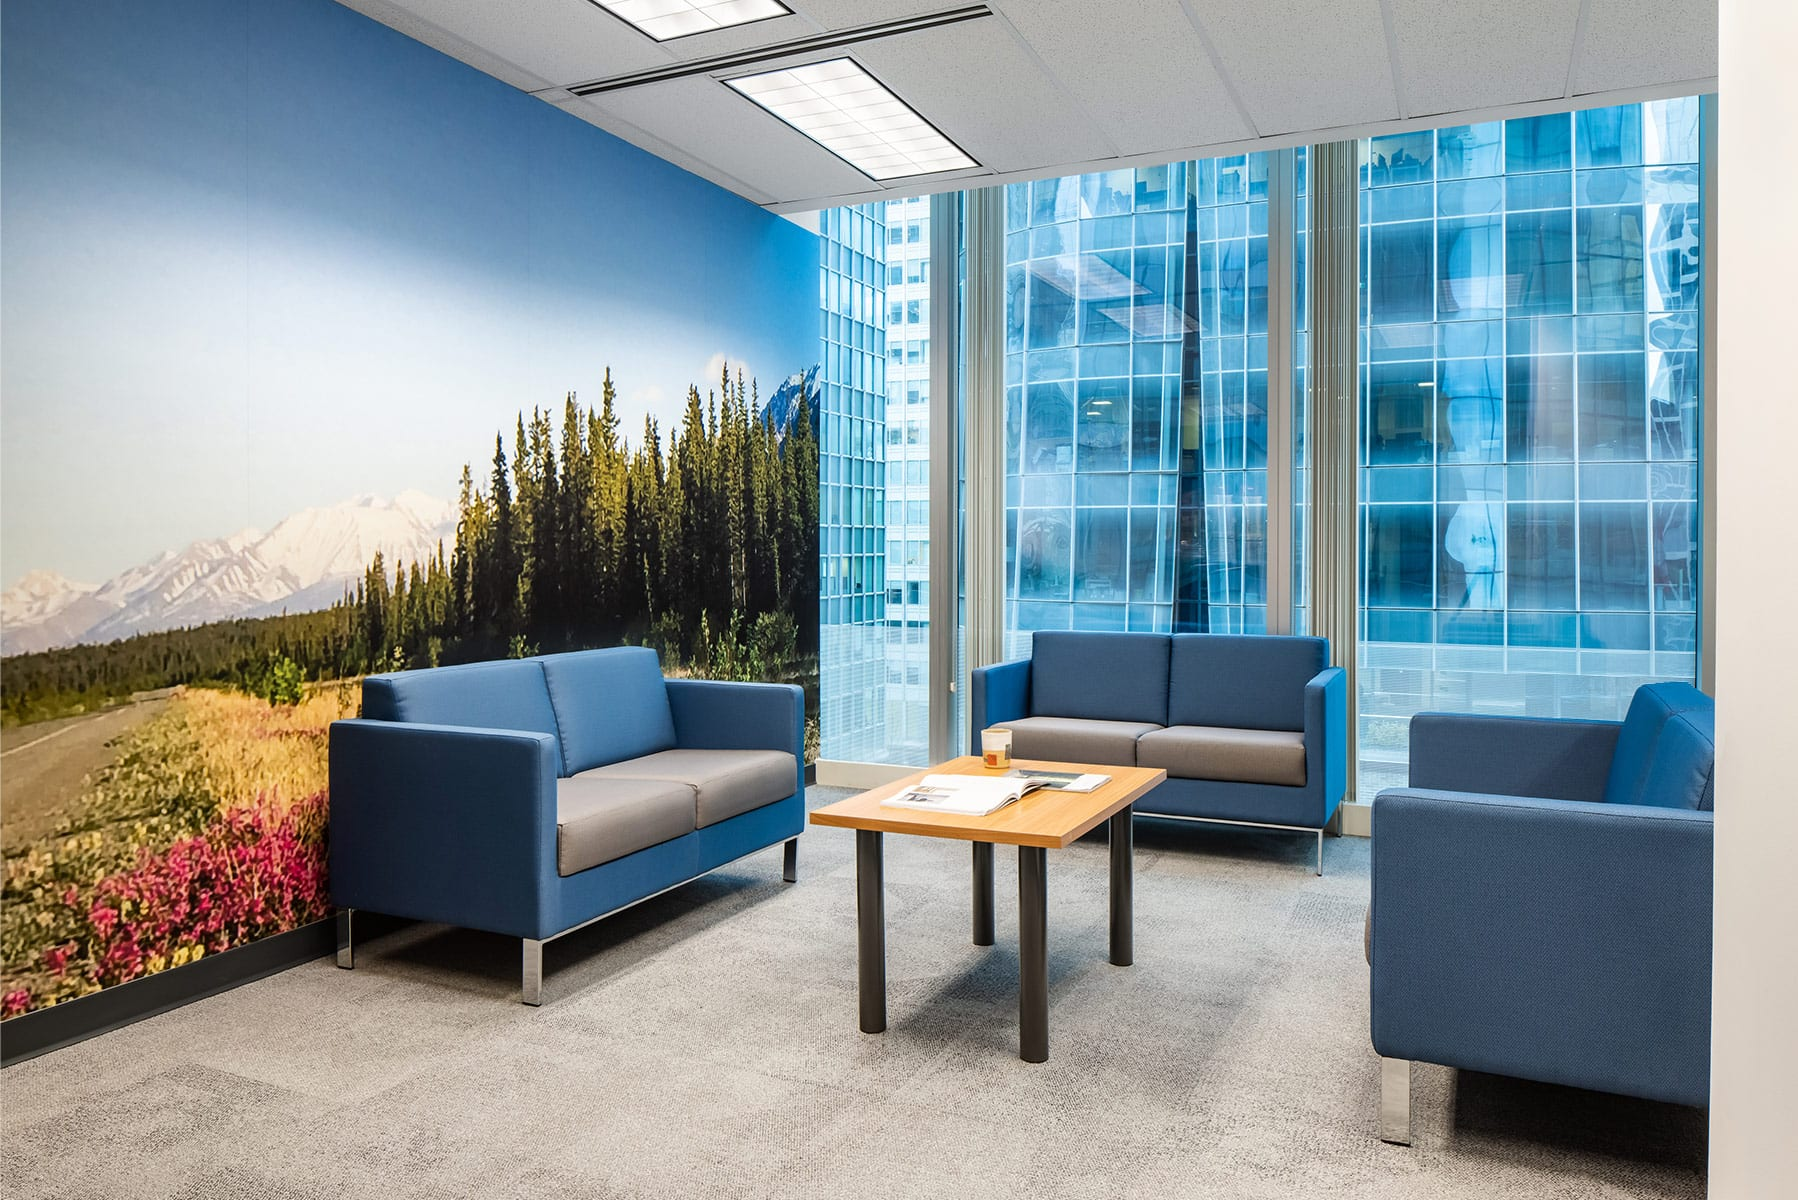 Downtown office renovation with new lounge and colourful wall graphics